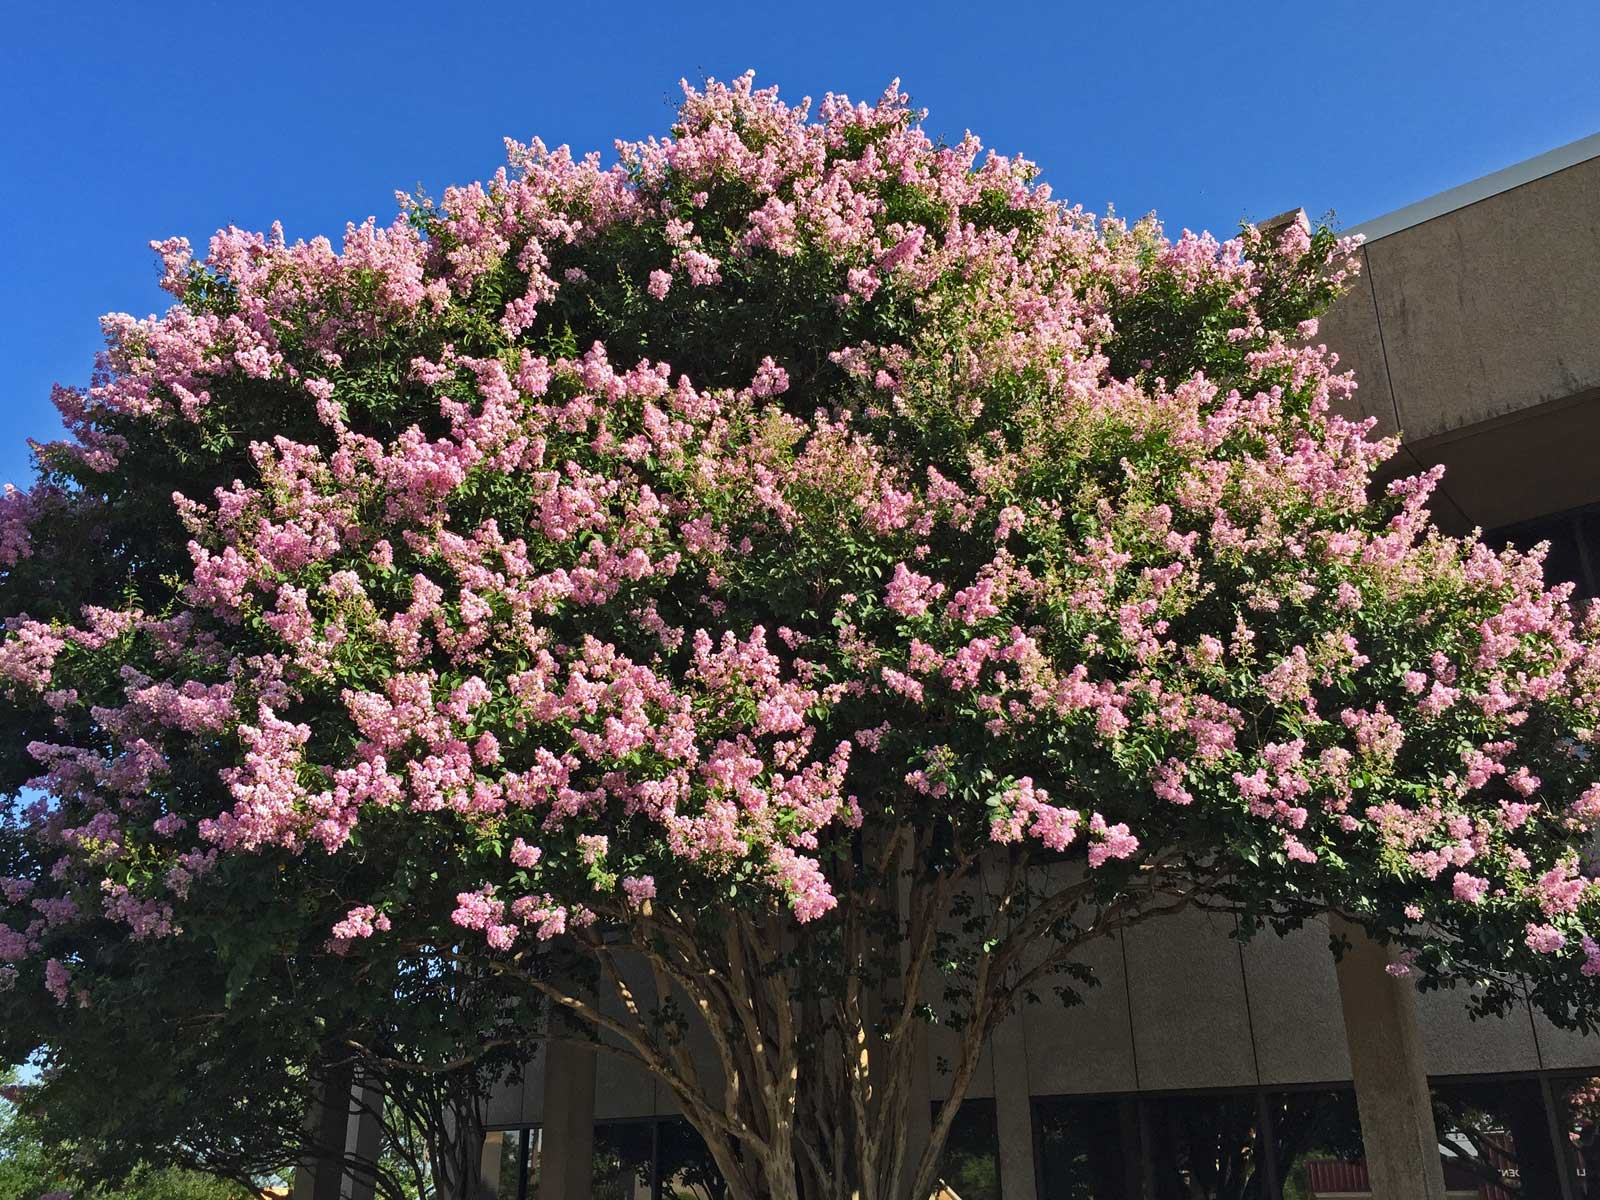 Crape myrtle 'Muskogee' with stately, beautiful light lavender bloom colors